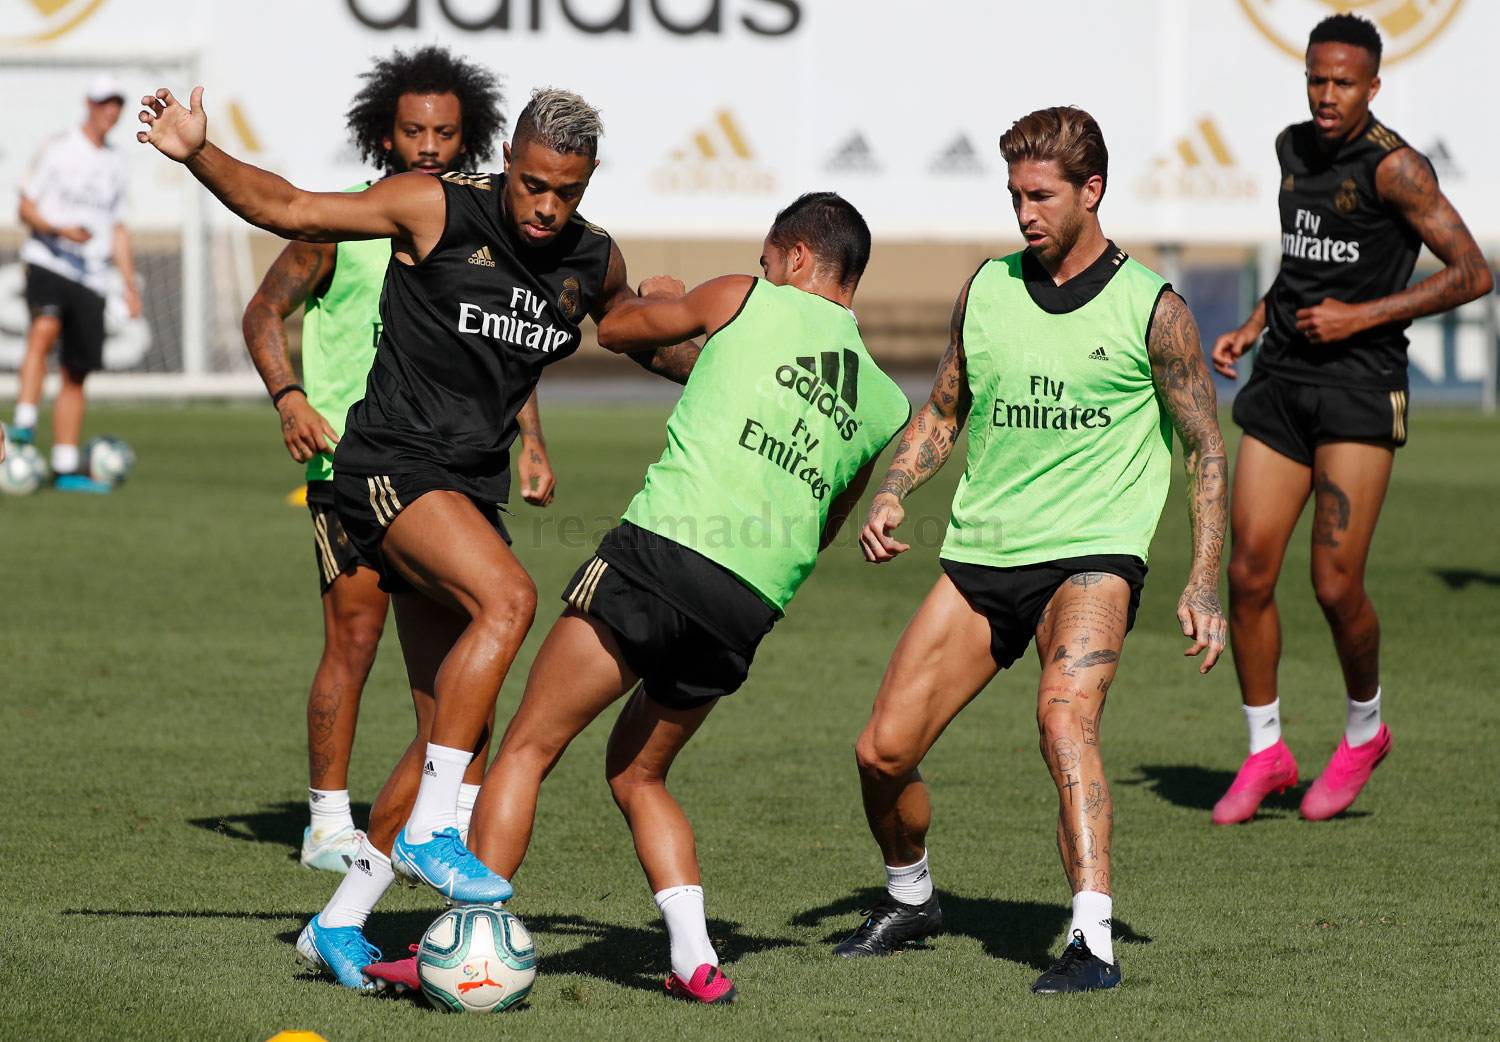 Real Madrid - Entrenamiento del Real Madrid  - 06-08-2019